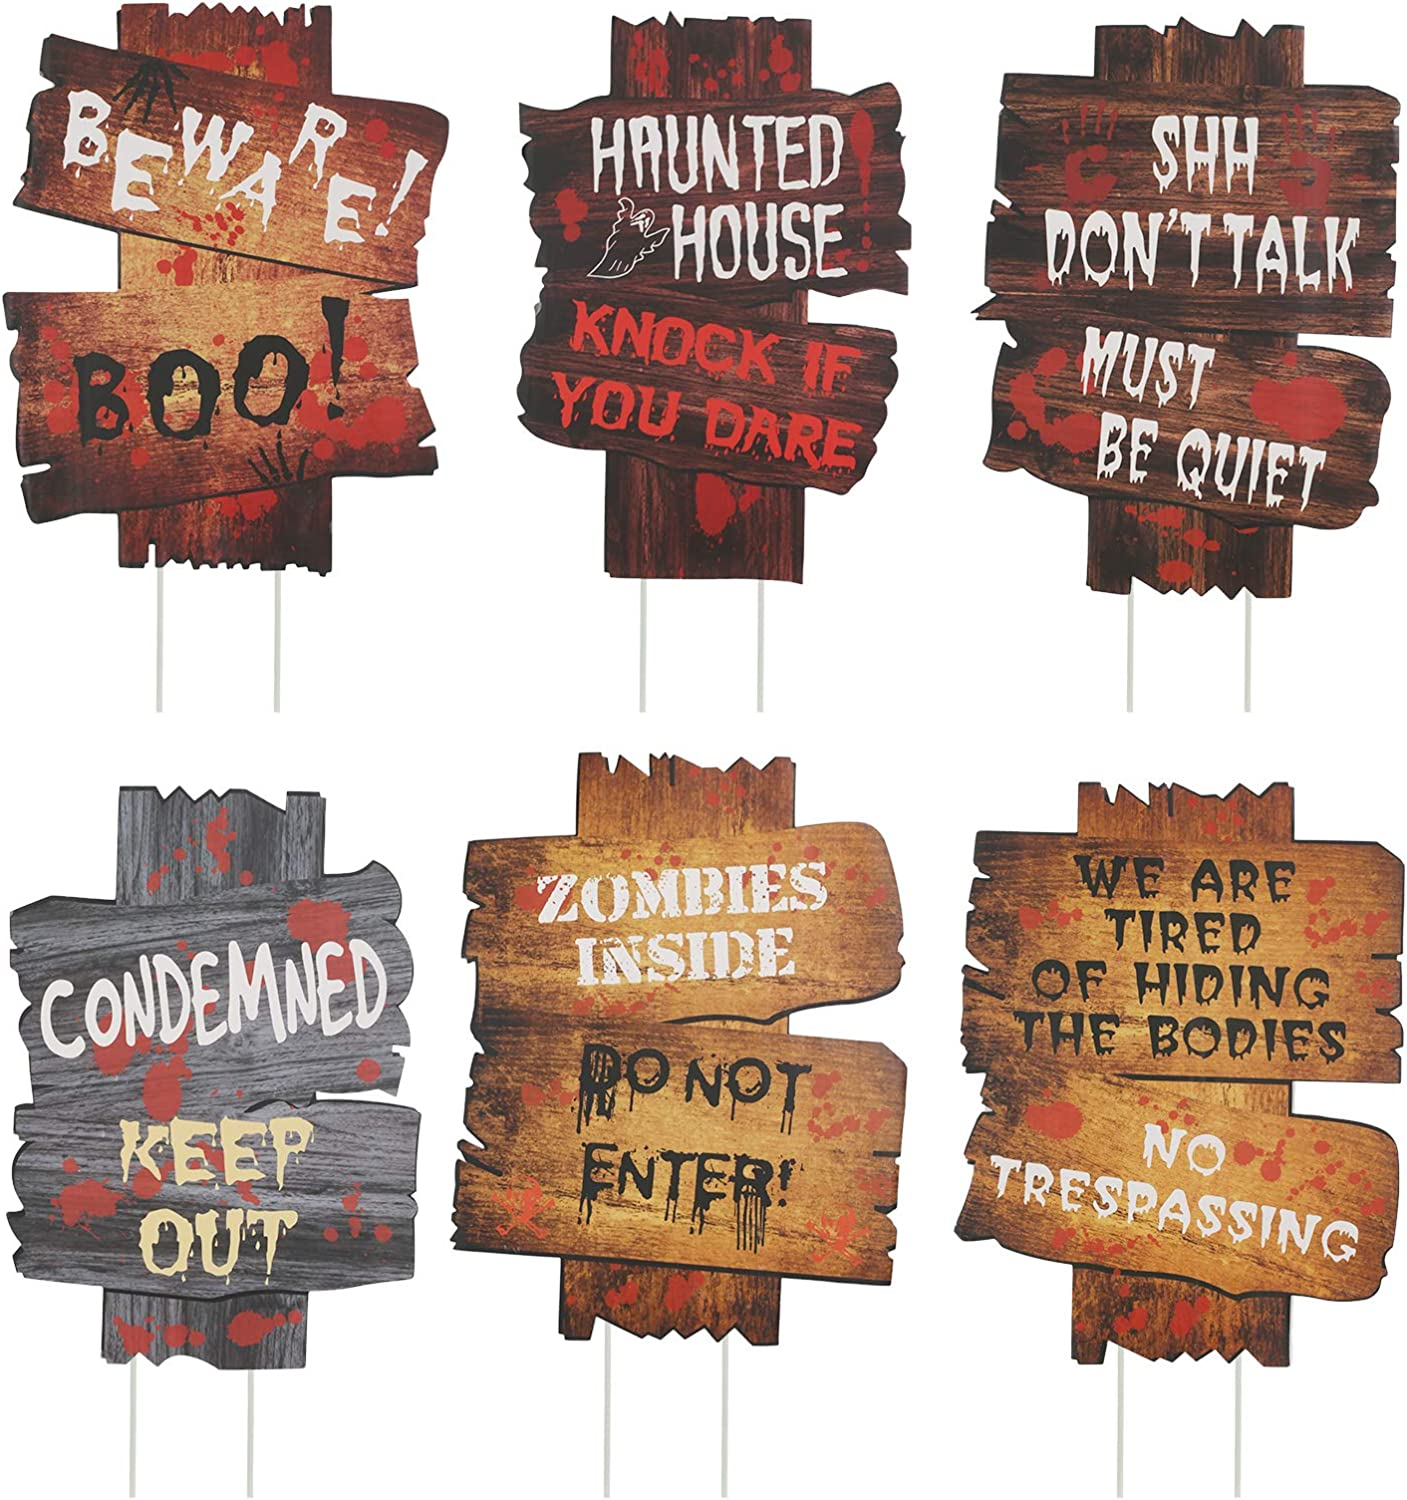 KATOOM 6 Pcs Halloween Beware Signs Yard Stake Lawn Decorations Outdoor Plastic Horror Warning Props Scary Bloody Roadside Guide for Zombie Vampire Graves Garden Decor Supplies